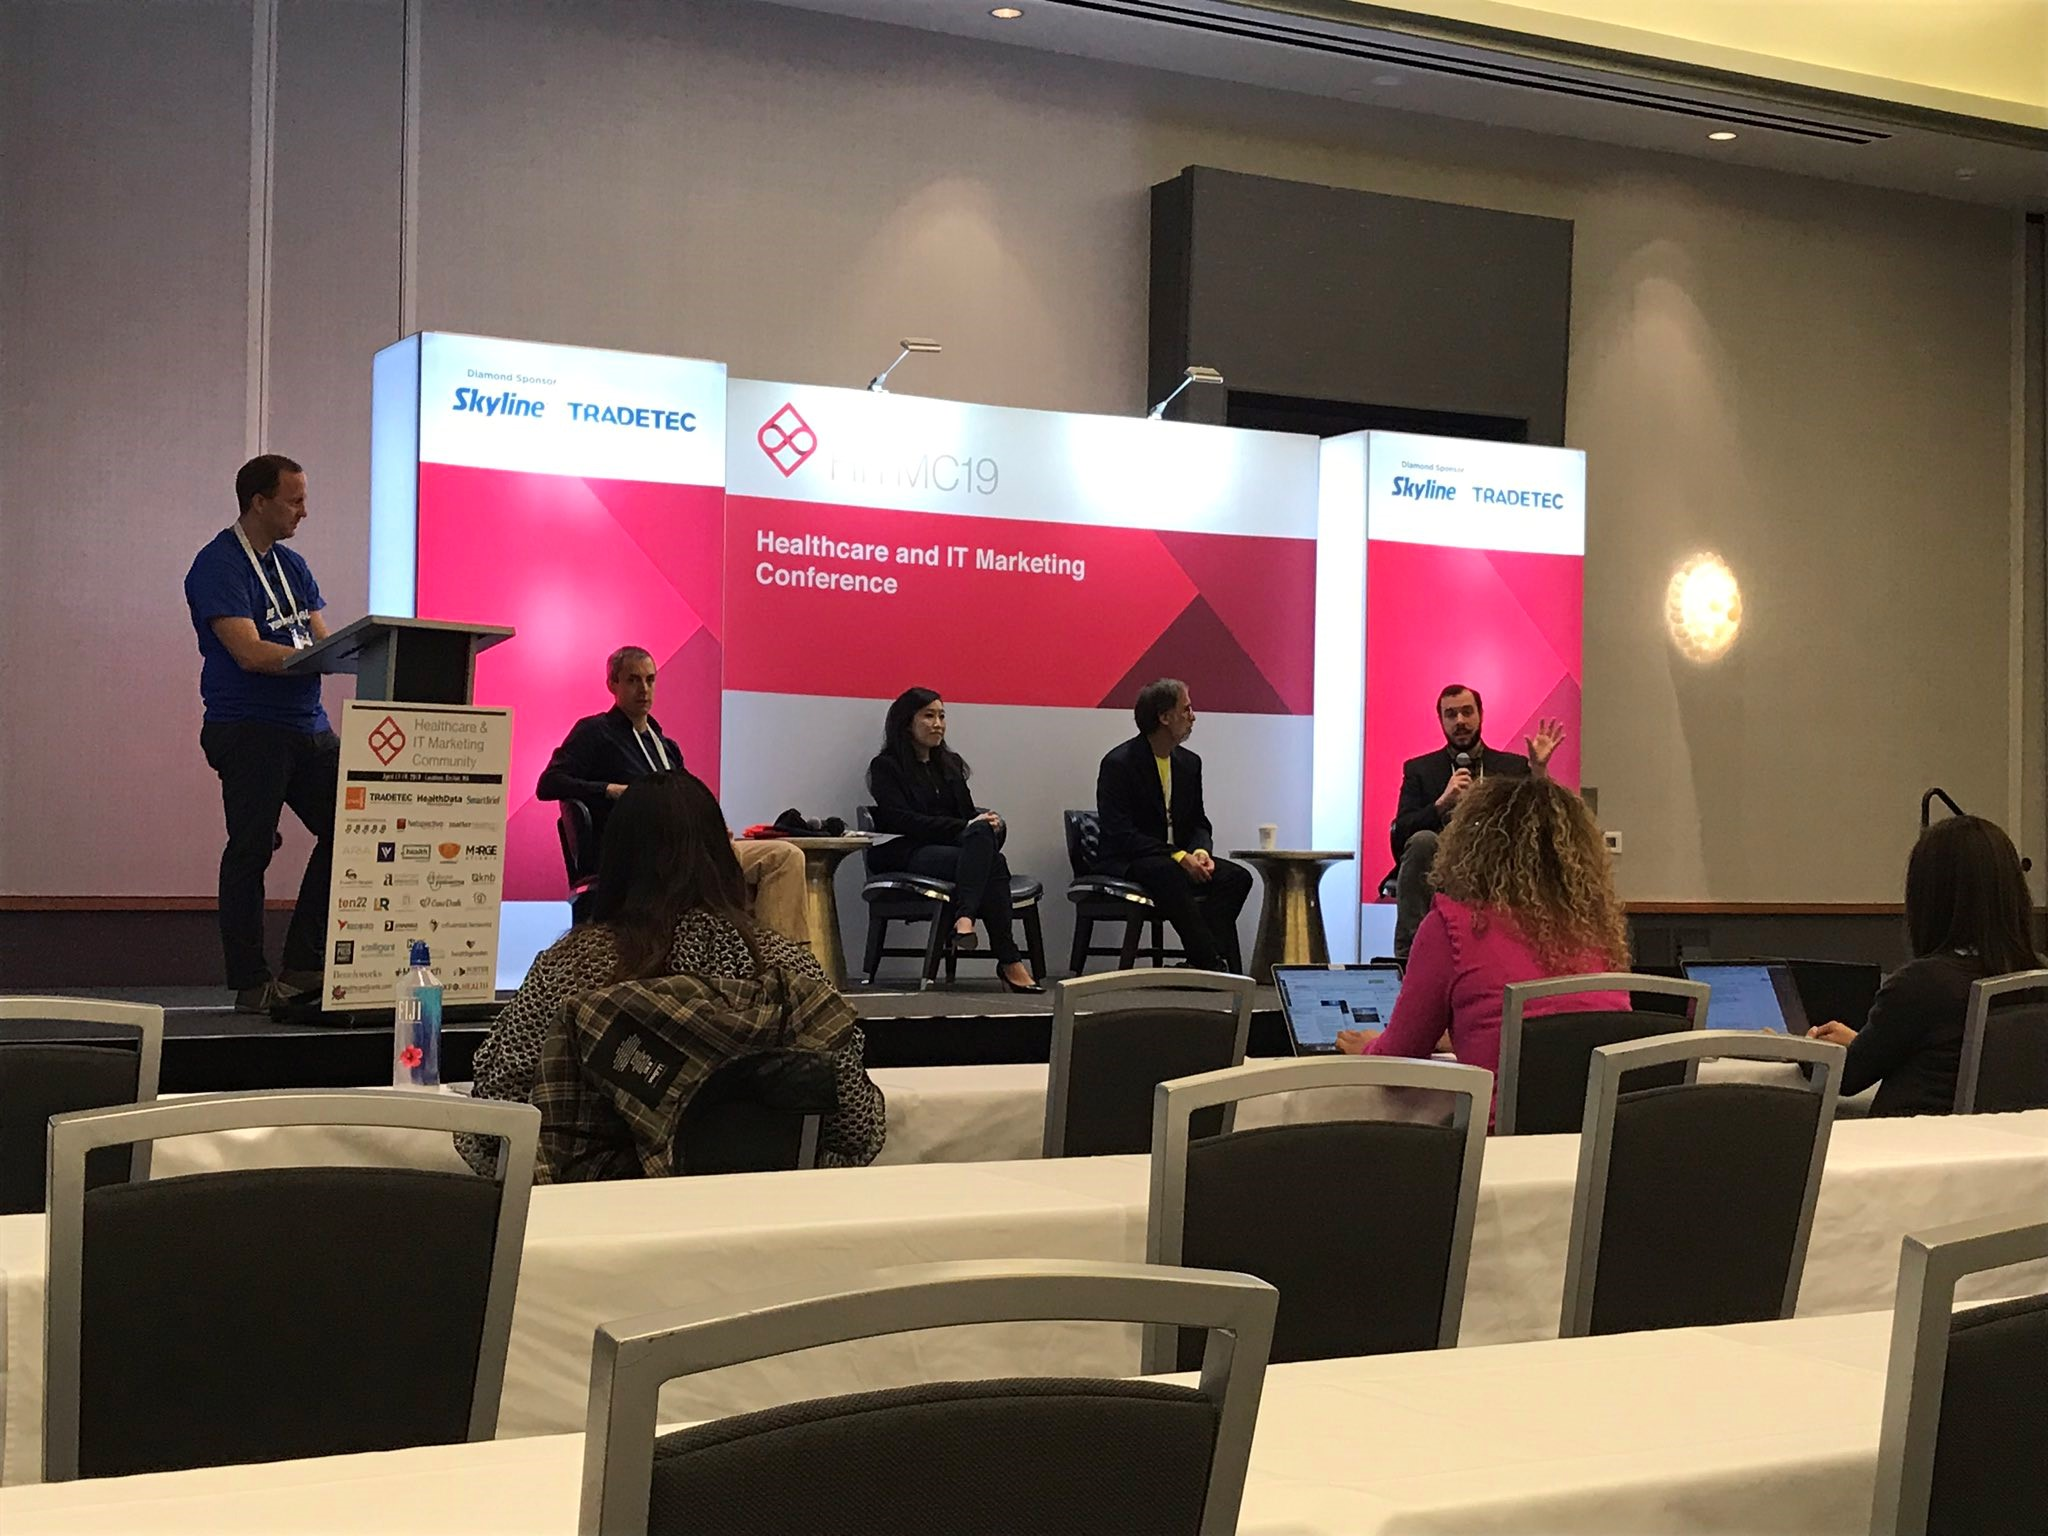 Health IT Media Panel at #HITMC 2019: John Lynn (moderator), Brian Eastwood, Jennifer Joe, MD, Fred Bazzoli, Jack Murtha